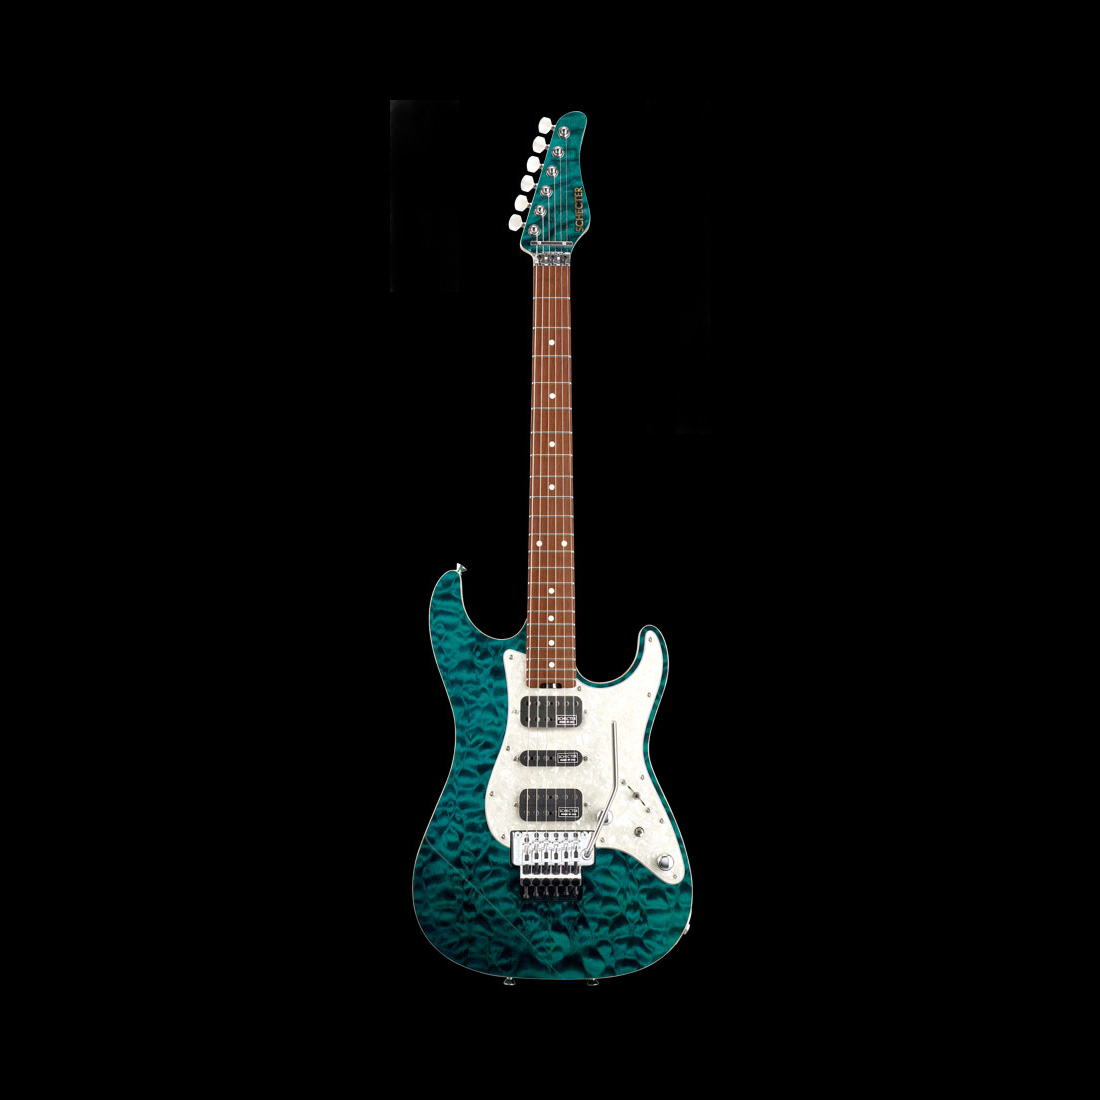 Schecter / EX-V-22-CTM-FRT Rosewood 4A Black Turquoise シェクター エレキギター 《受注生産:予約受付中》